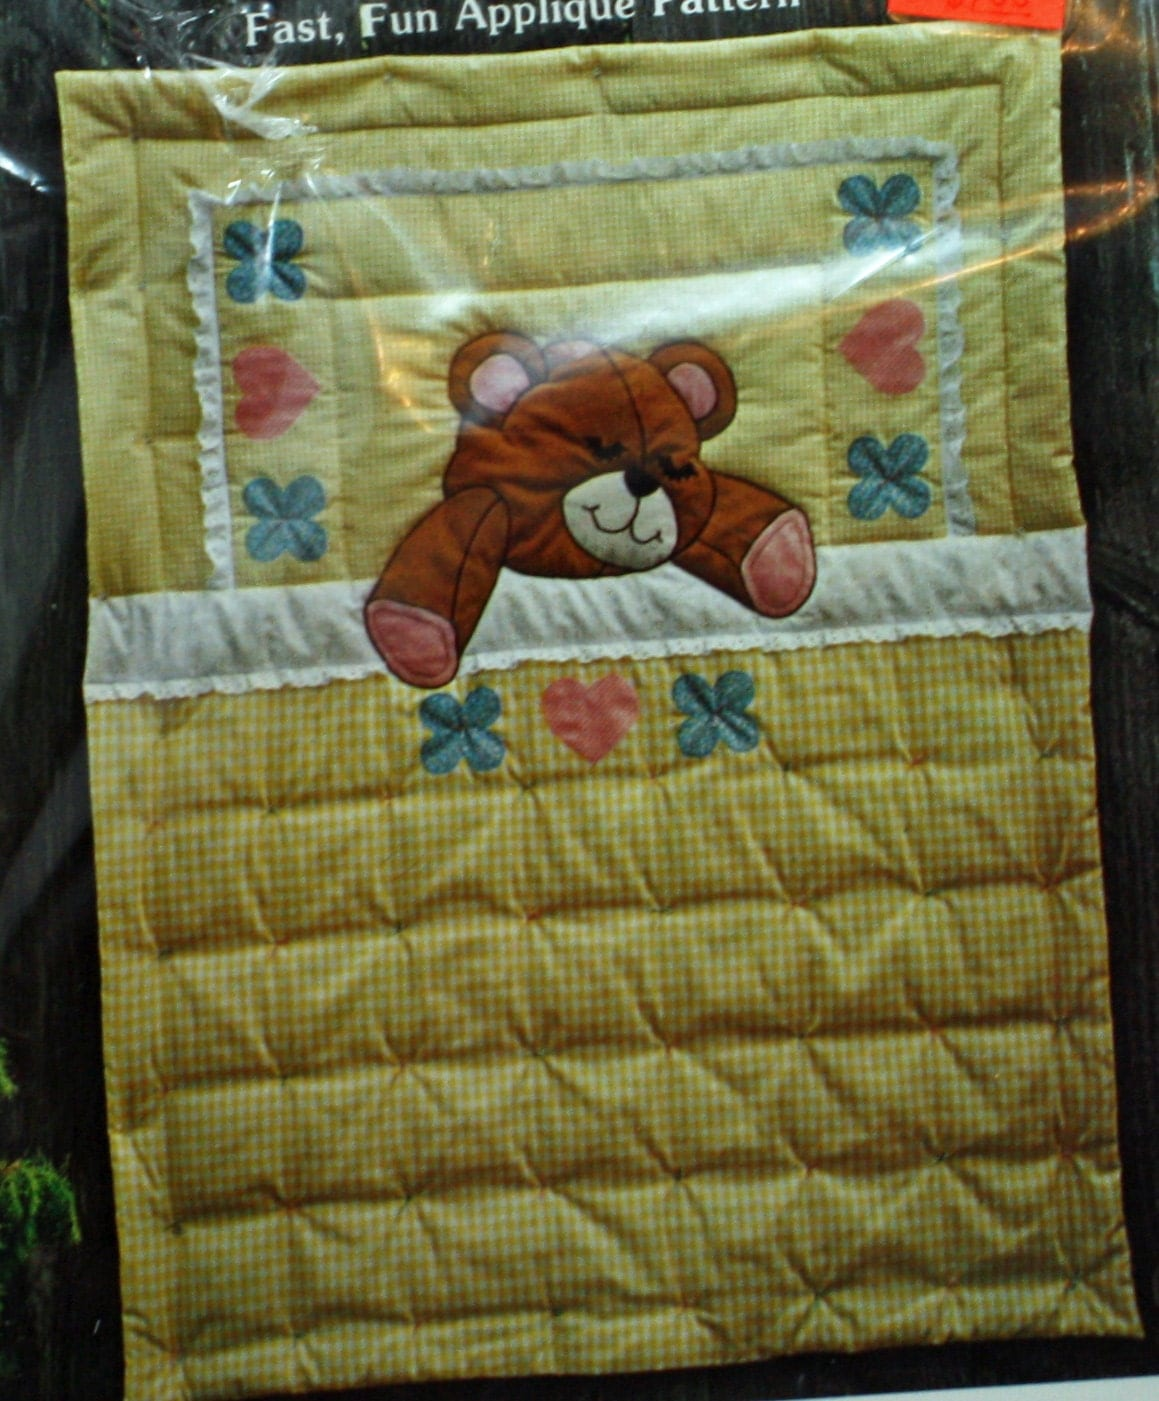 Vintage 1970s Sewing Pattern Sleepy Teddy Quilt By The